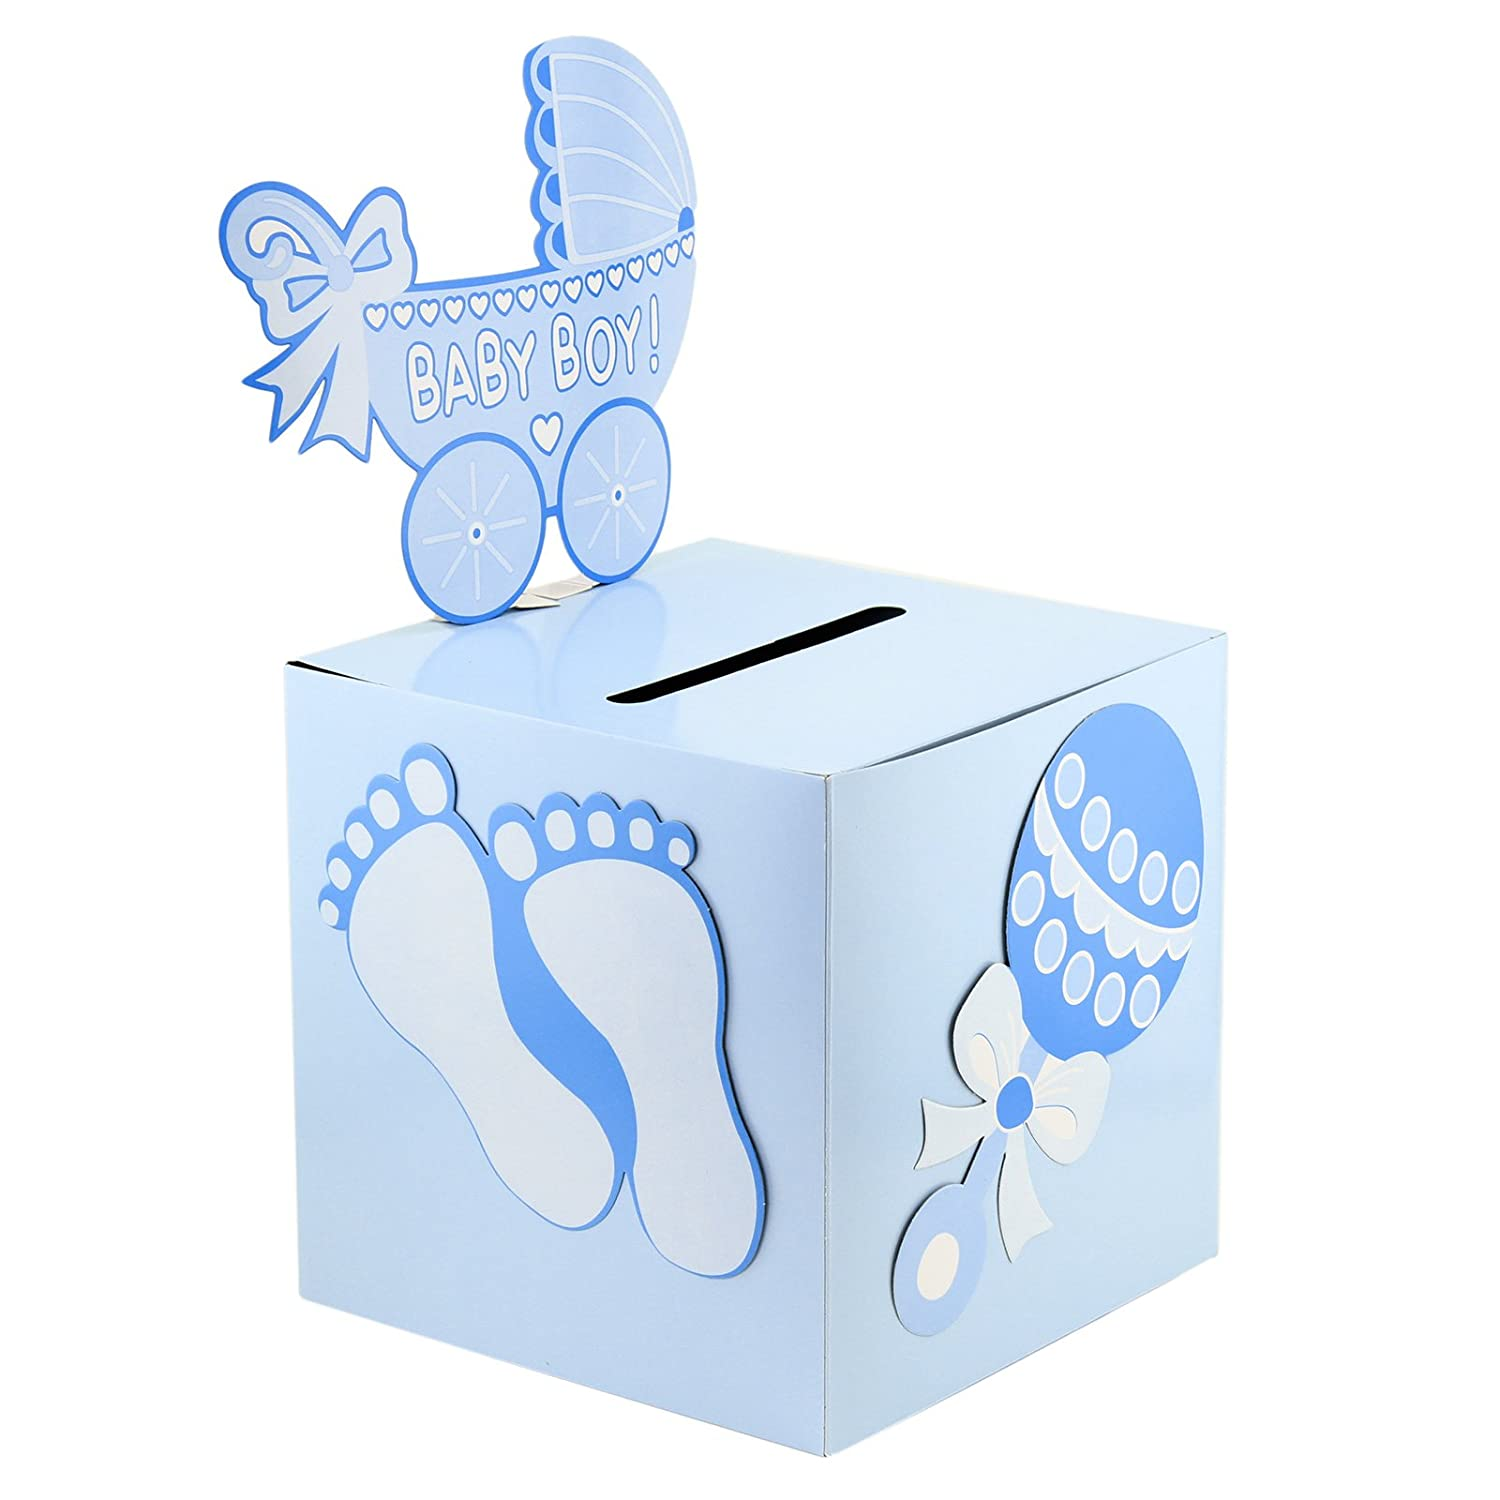 Deco4fun Blue Boy Baby Shower Card Box Money Gift Favor Idea Keepsake Gender Reveal Party